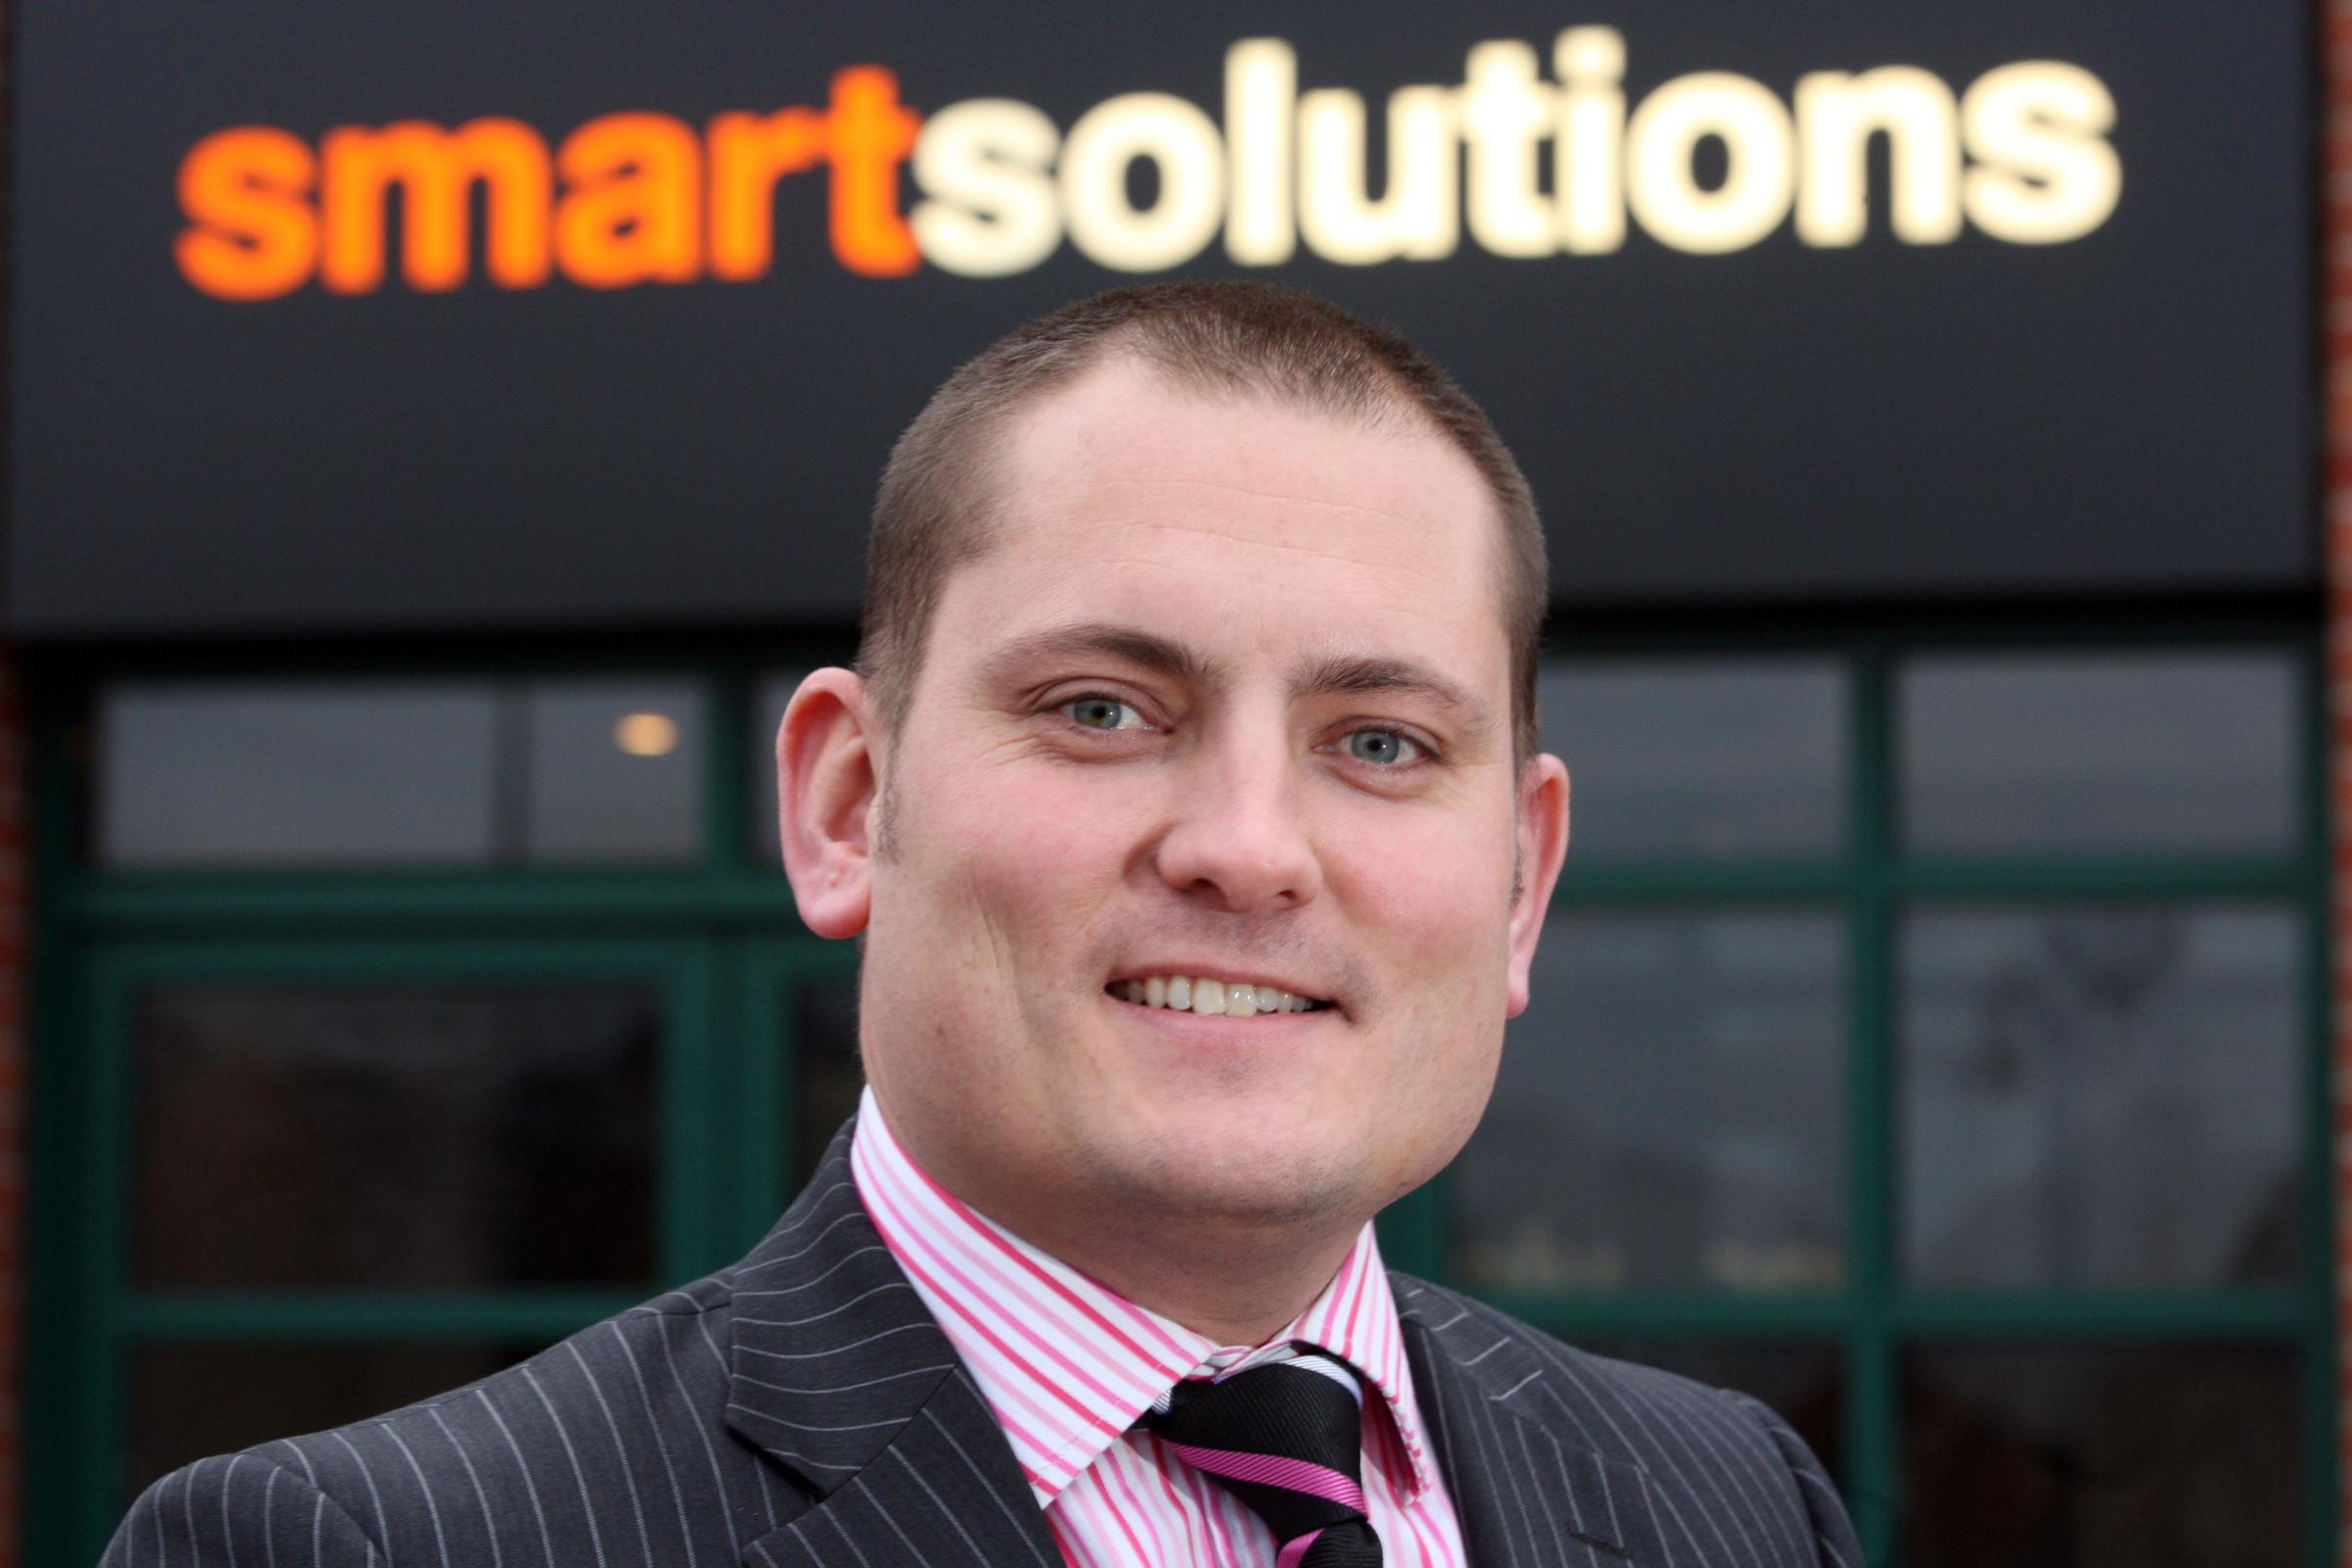 Nathan Bowles, CEO, Smart Solutions